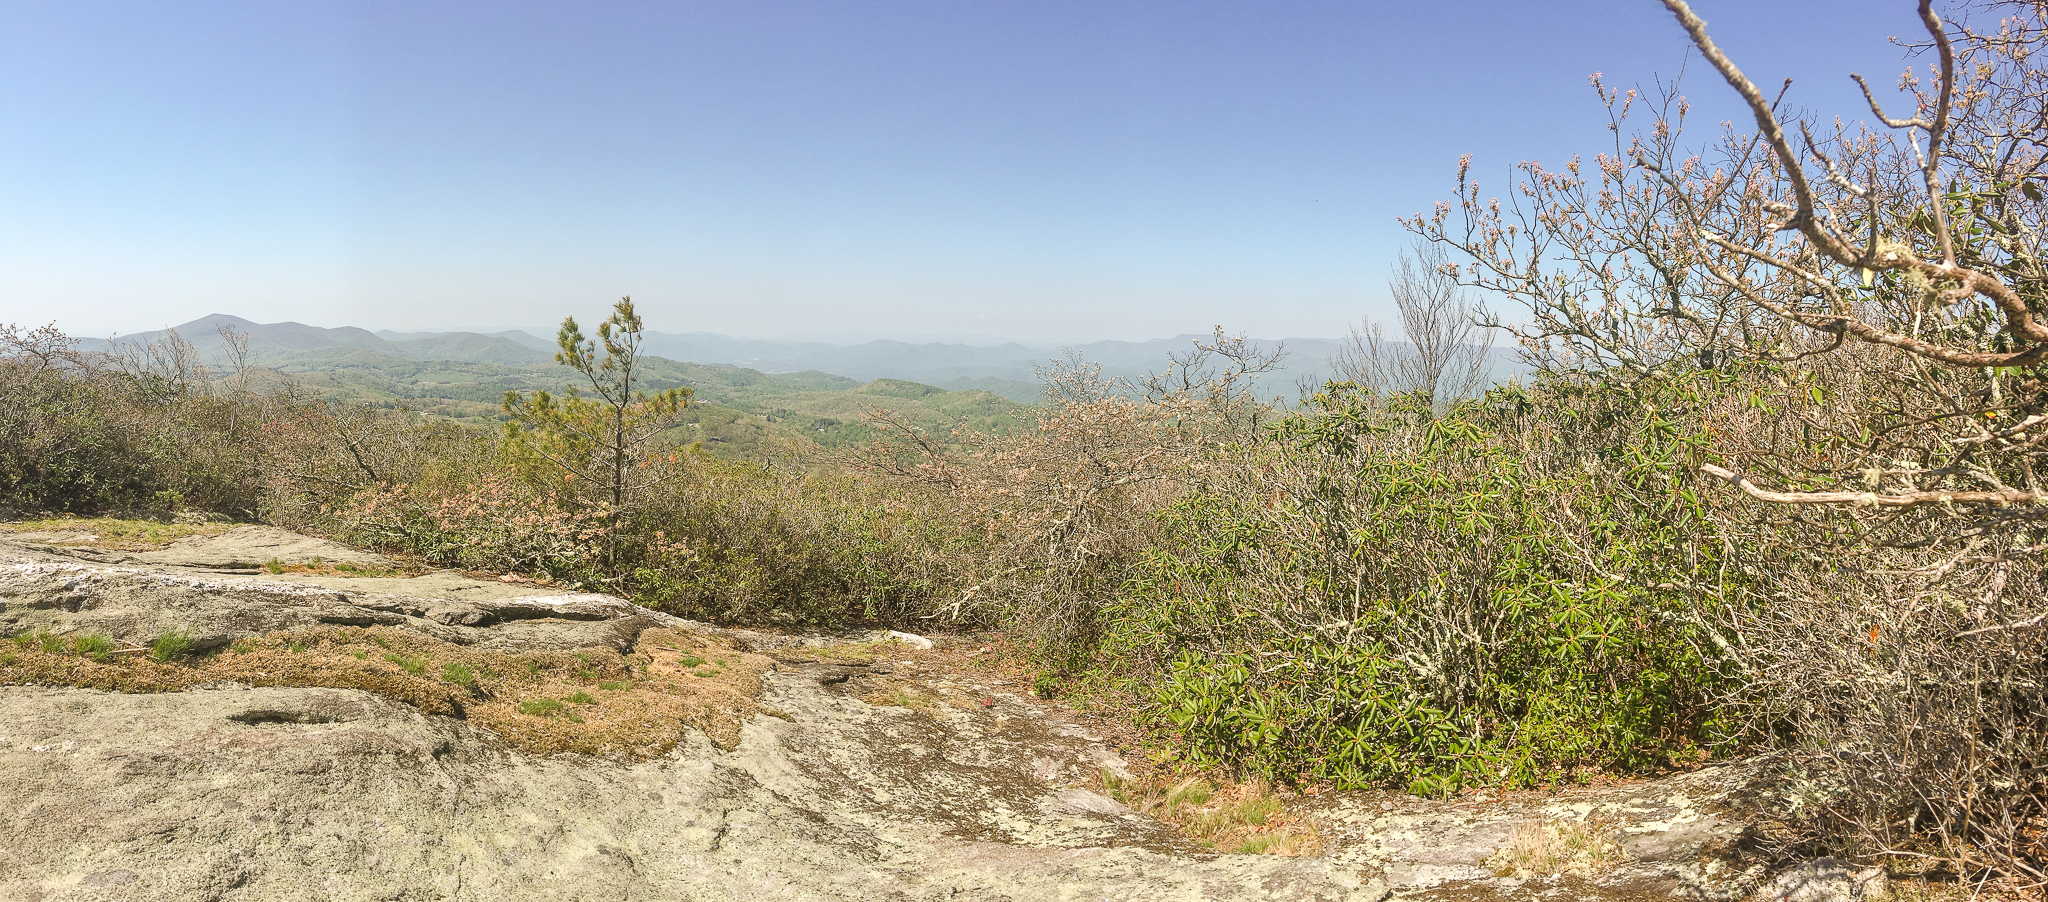 View from the top of Whiteside Mountain